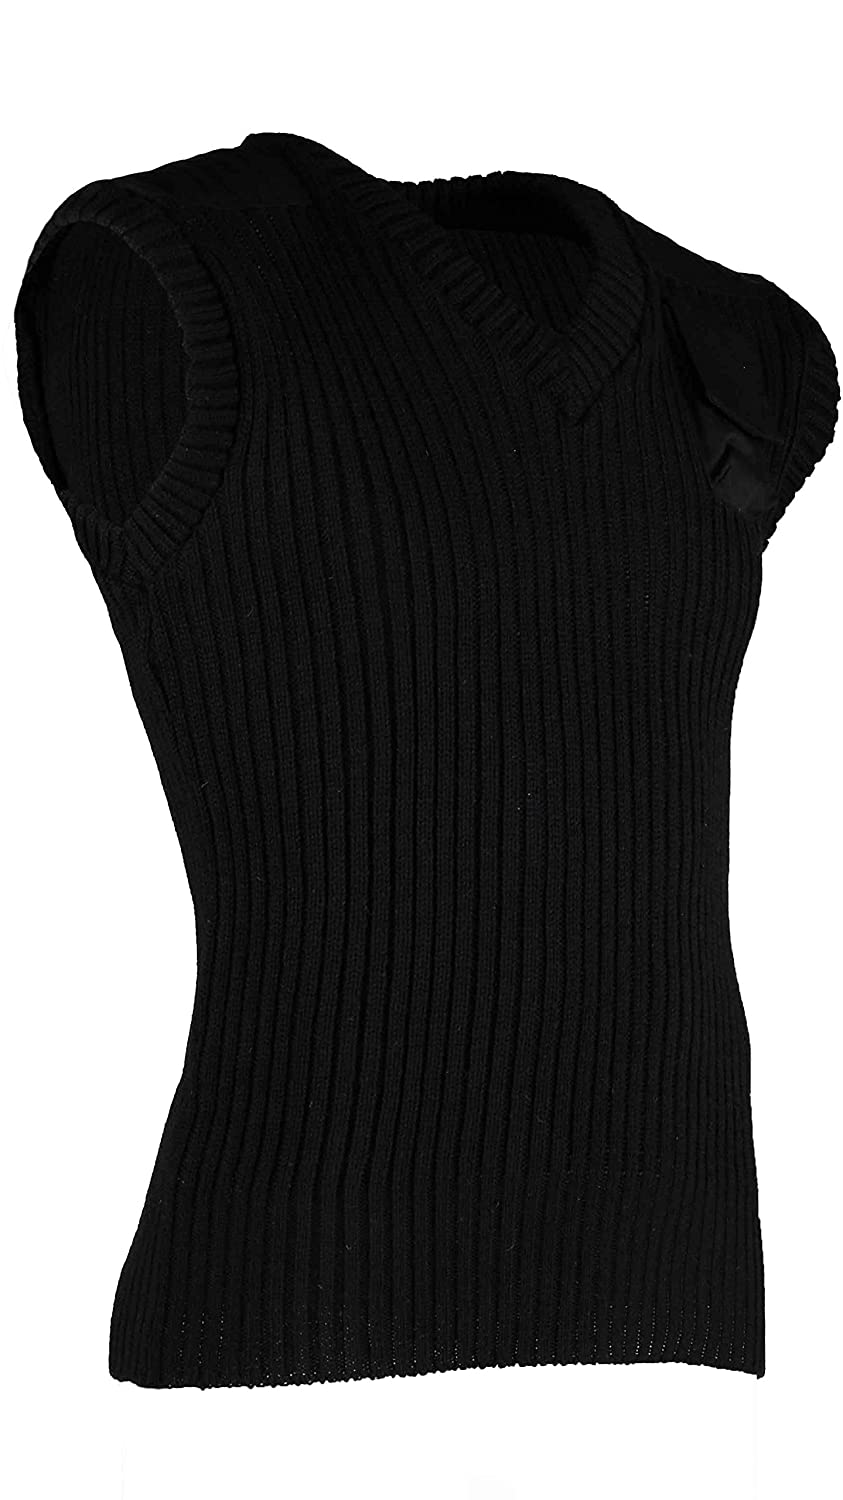 100% Wool Ribbed Slipover. V Neck with shoulder Patches and chest pkt. #13001